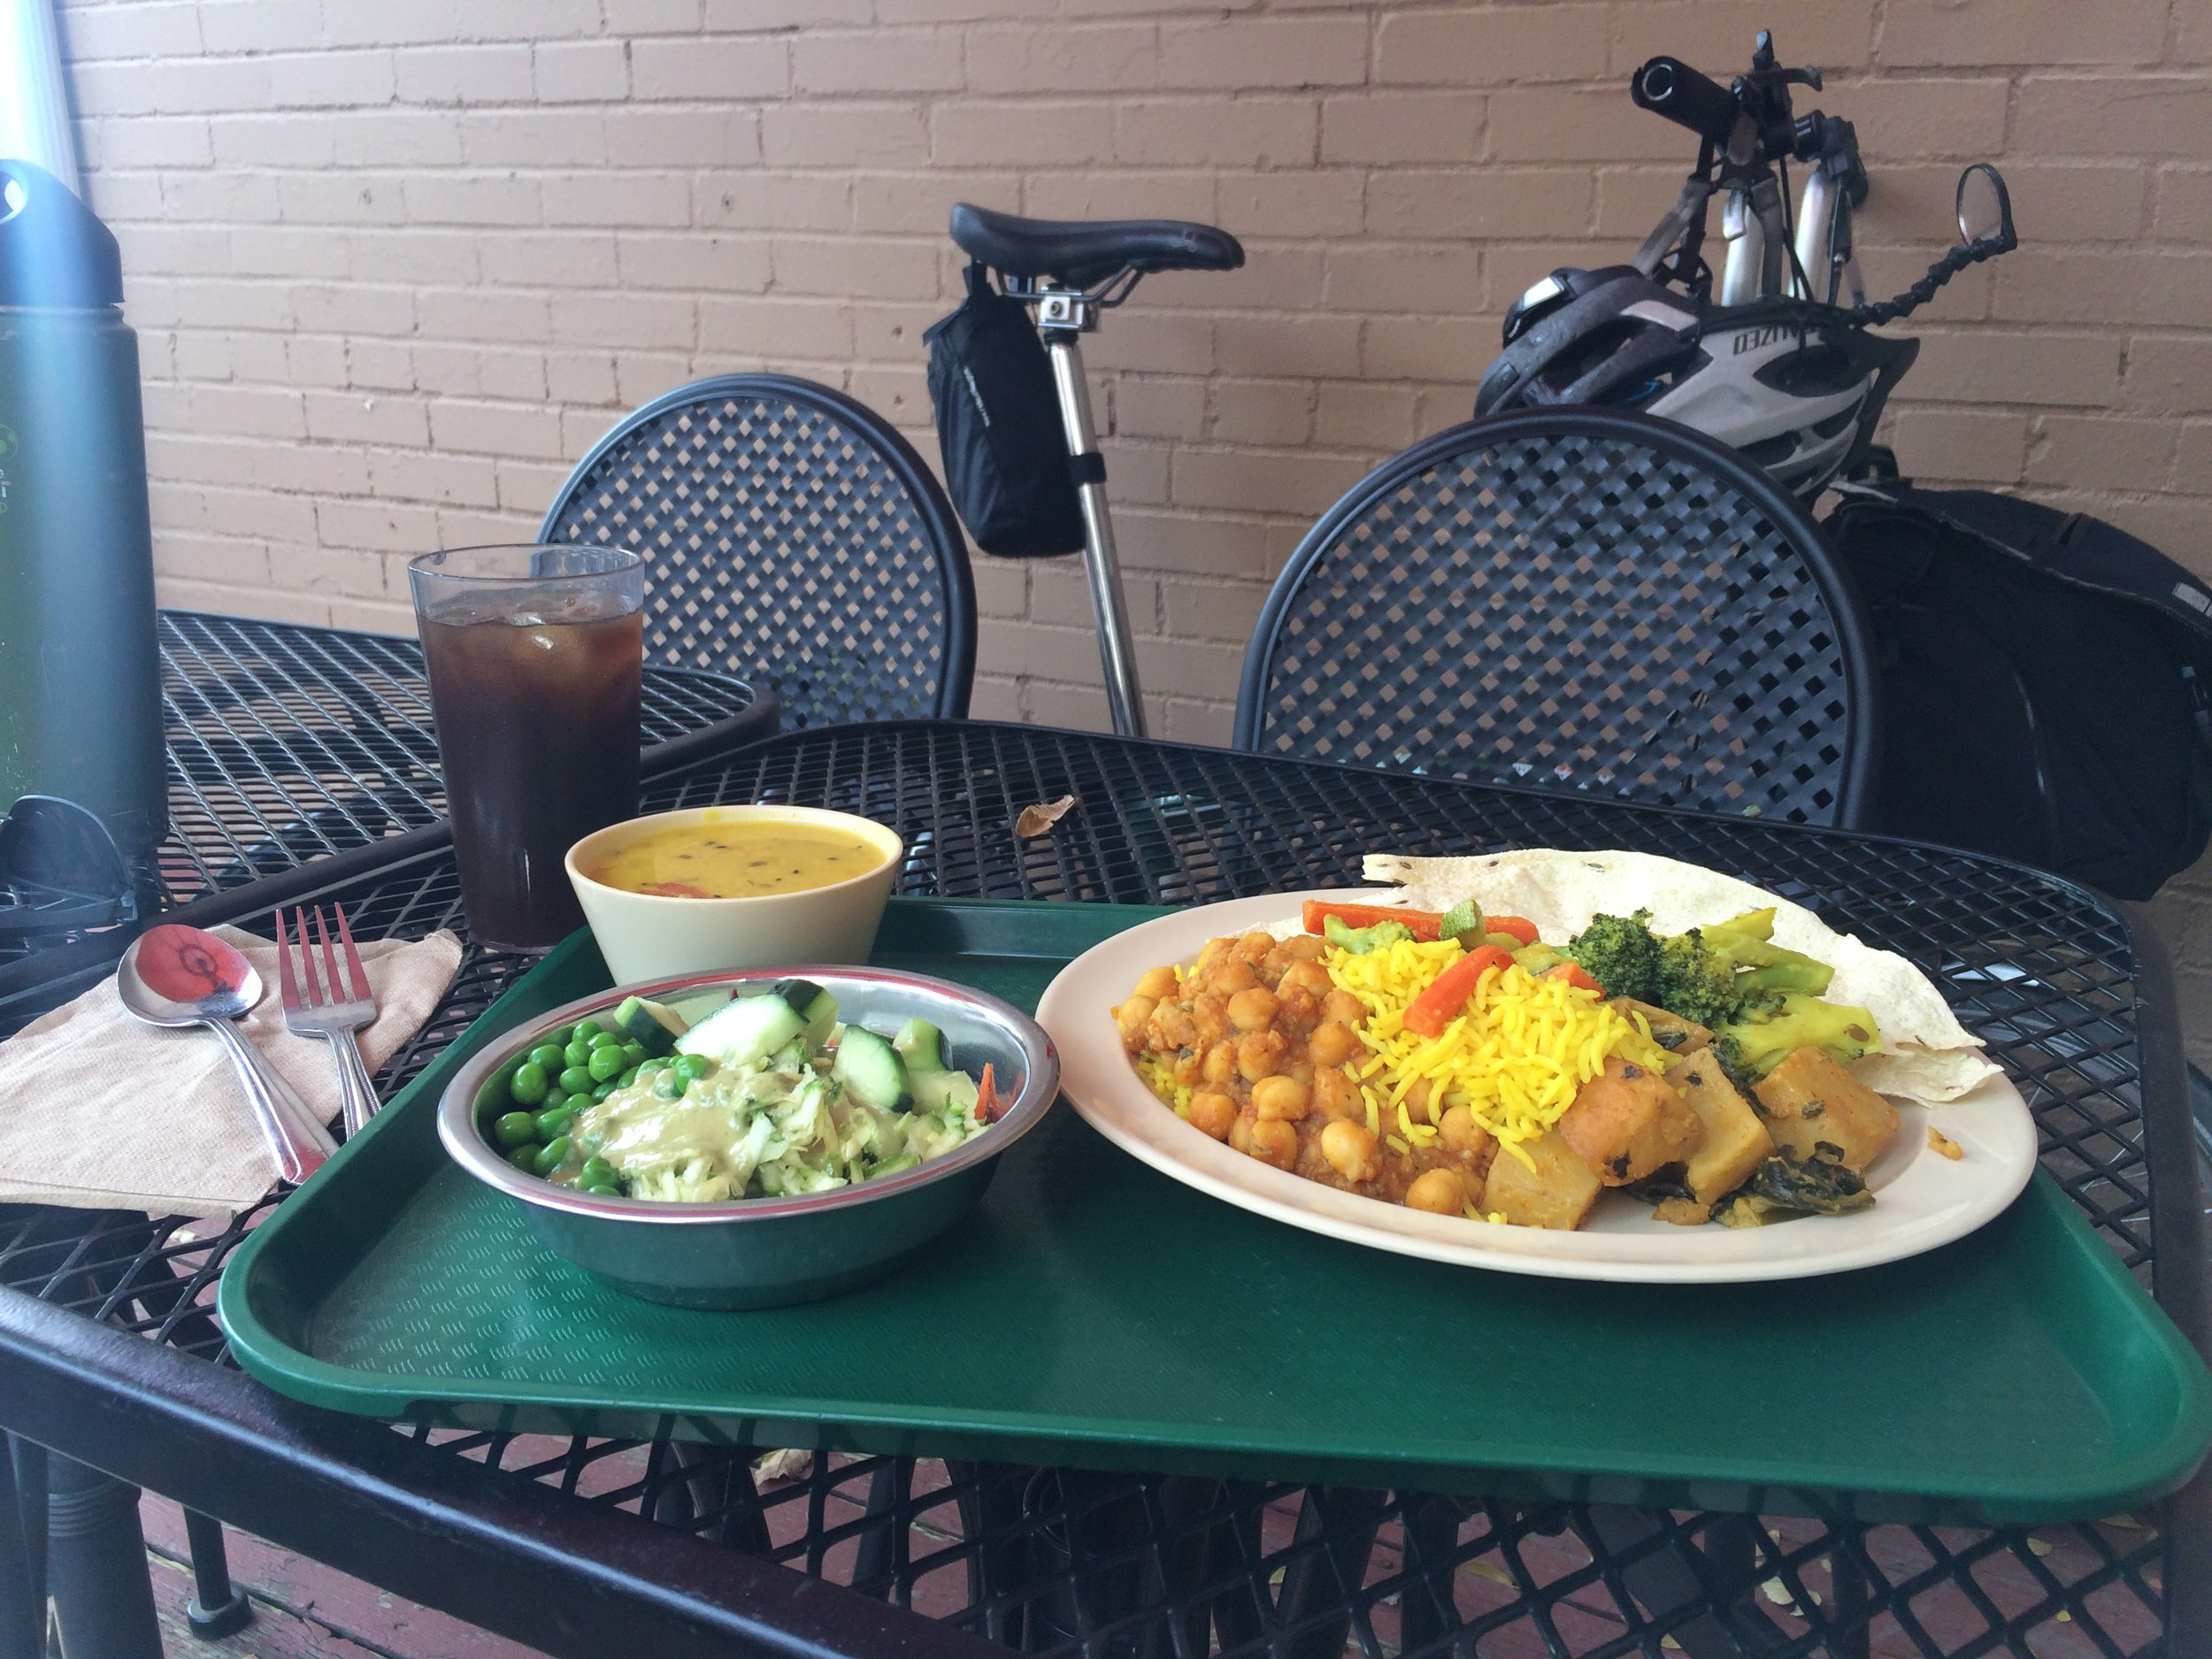 Lunch at Govinda's Garden Cafe, Denver, Colorado